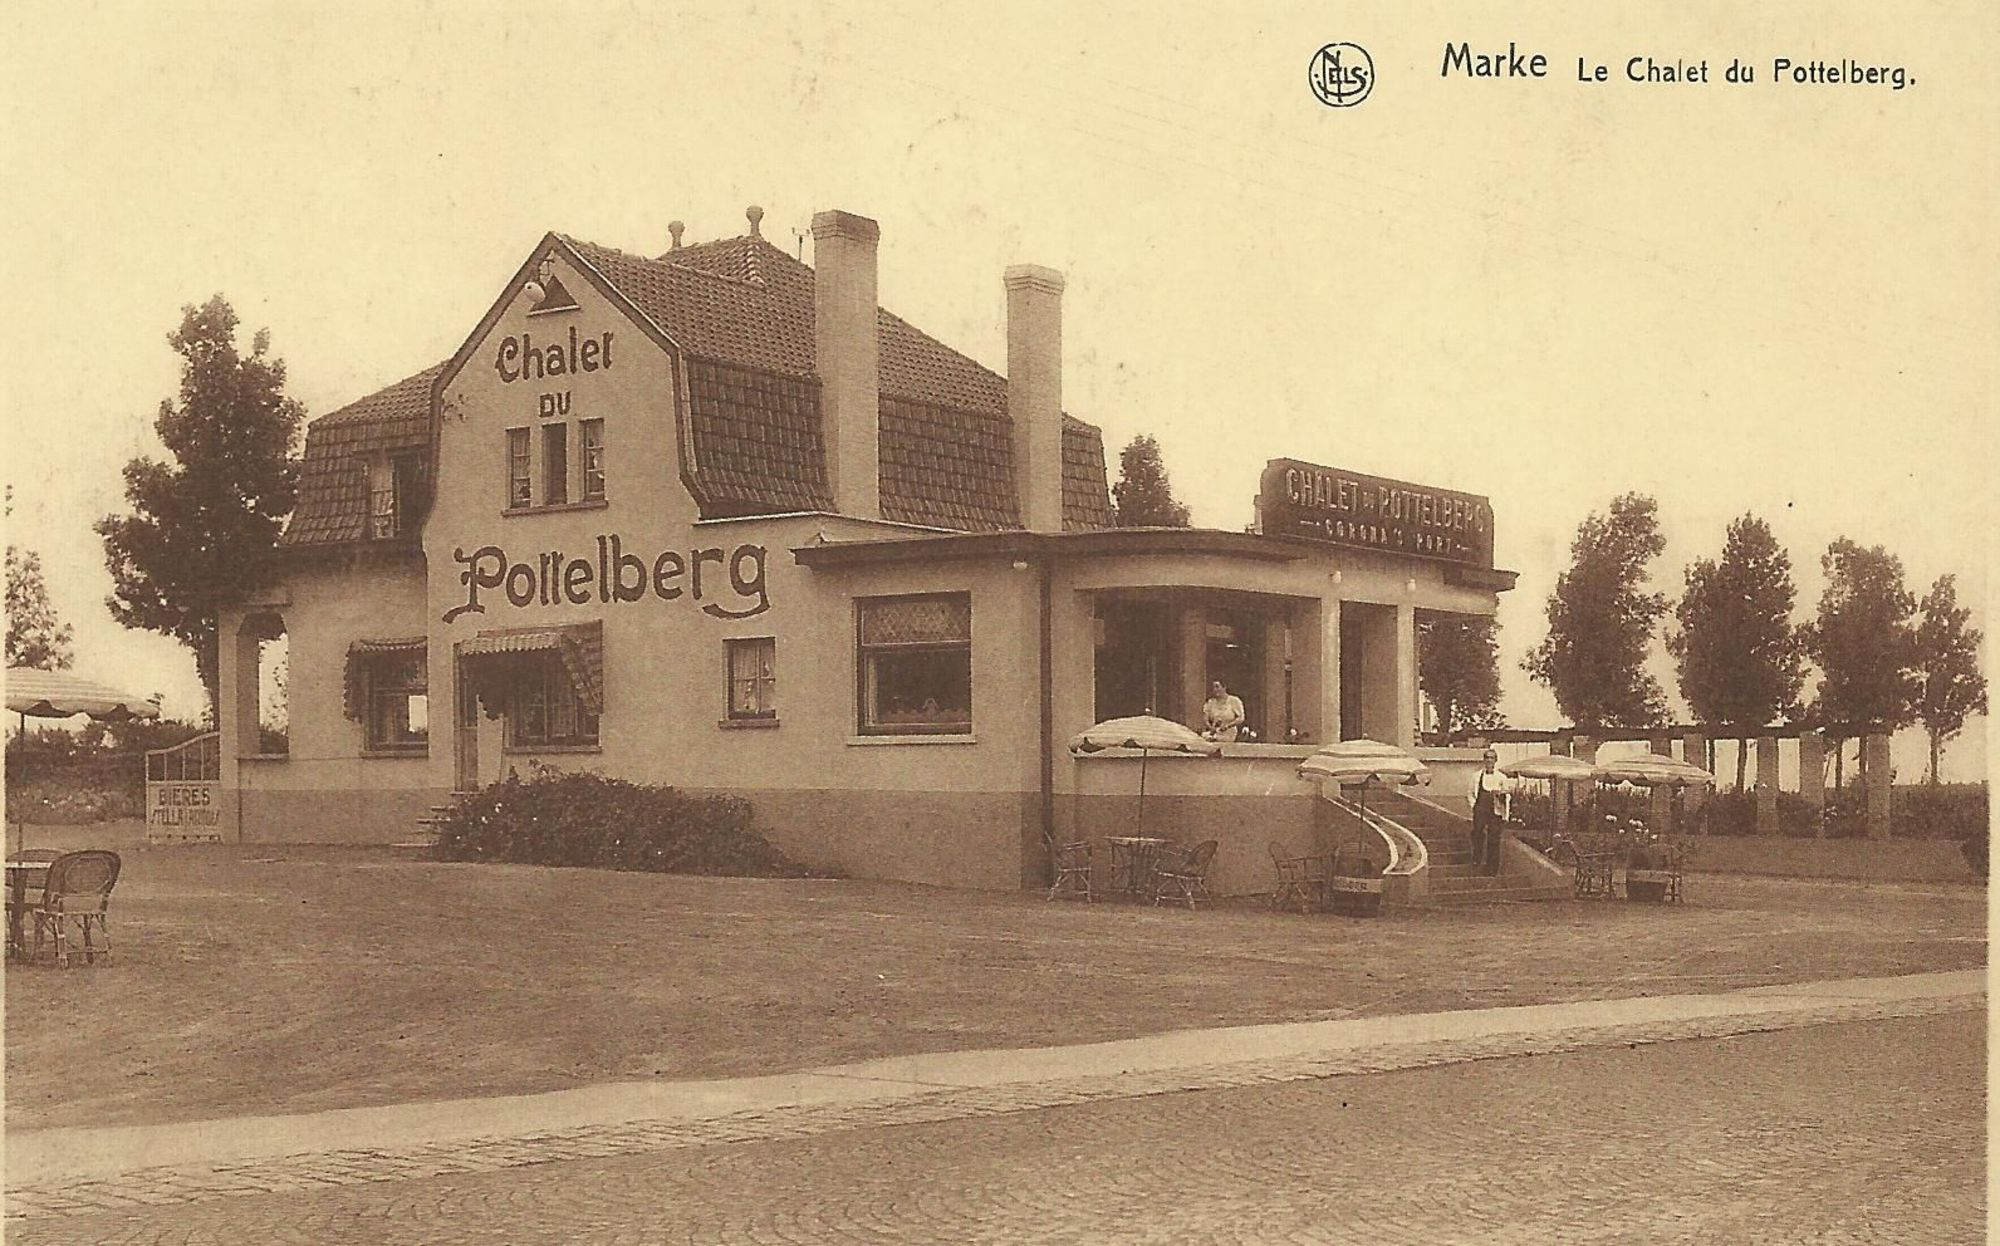 Pottelberg chalet in Marke